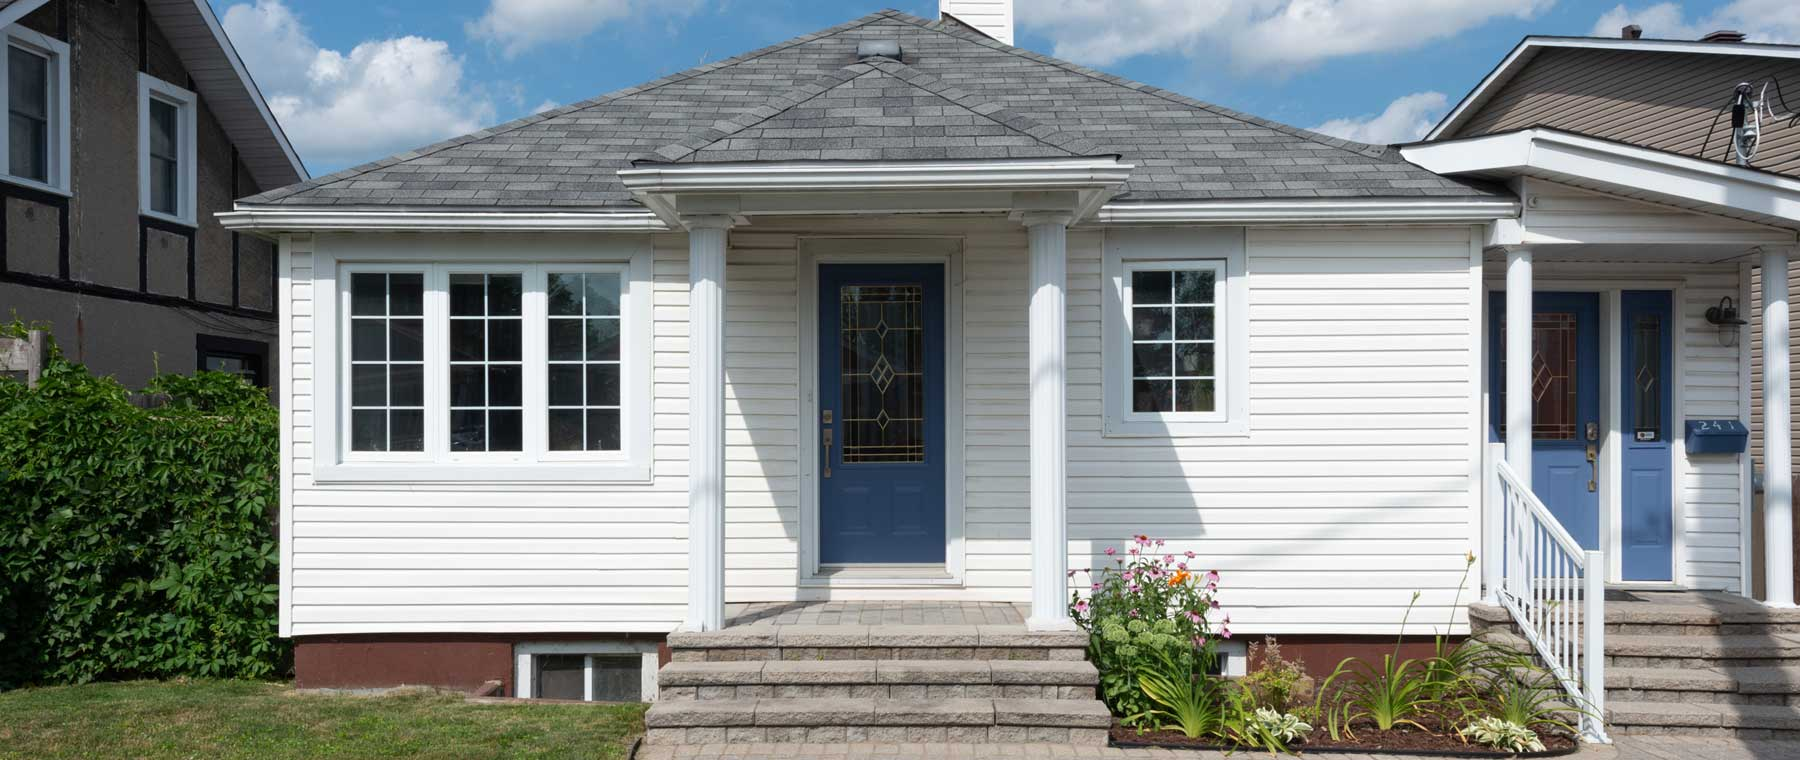 House of the Week: $374,900 for a cute 2-bedroom with a basement apartment